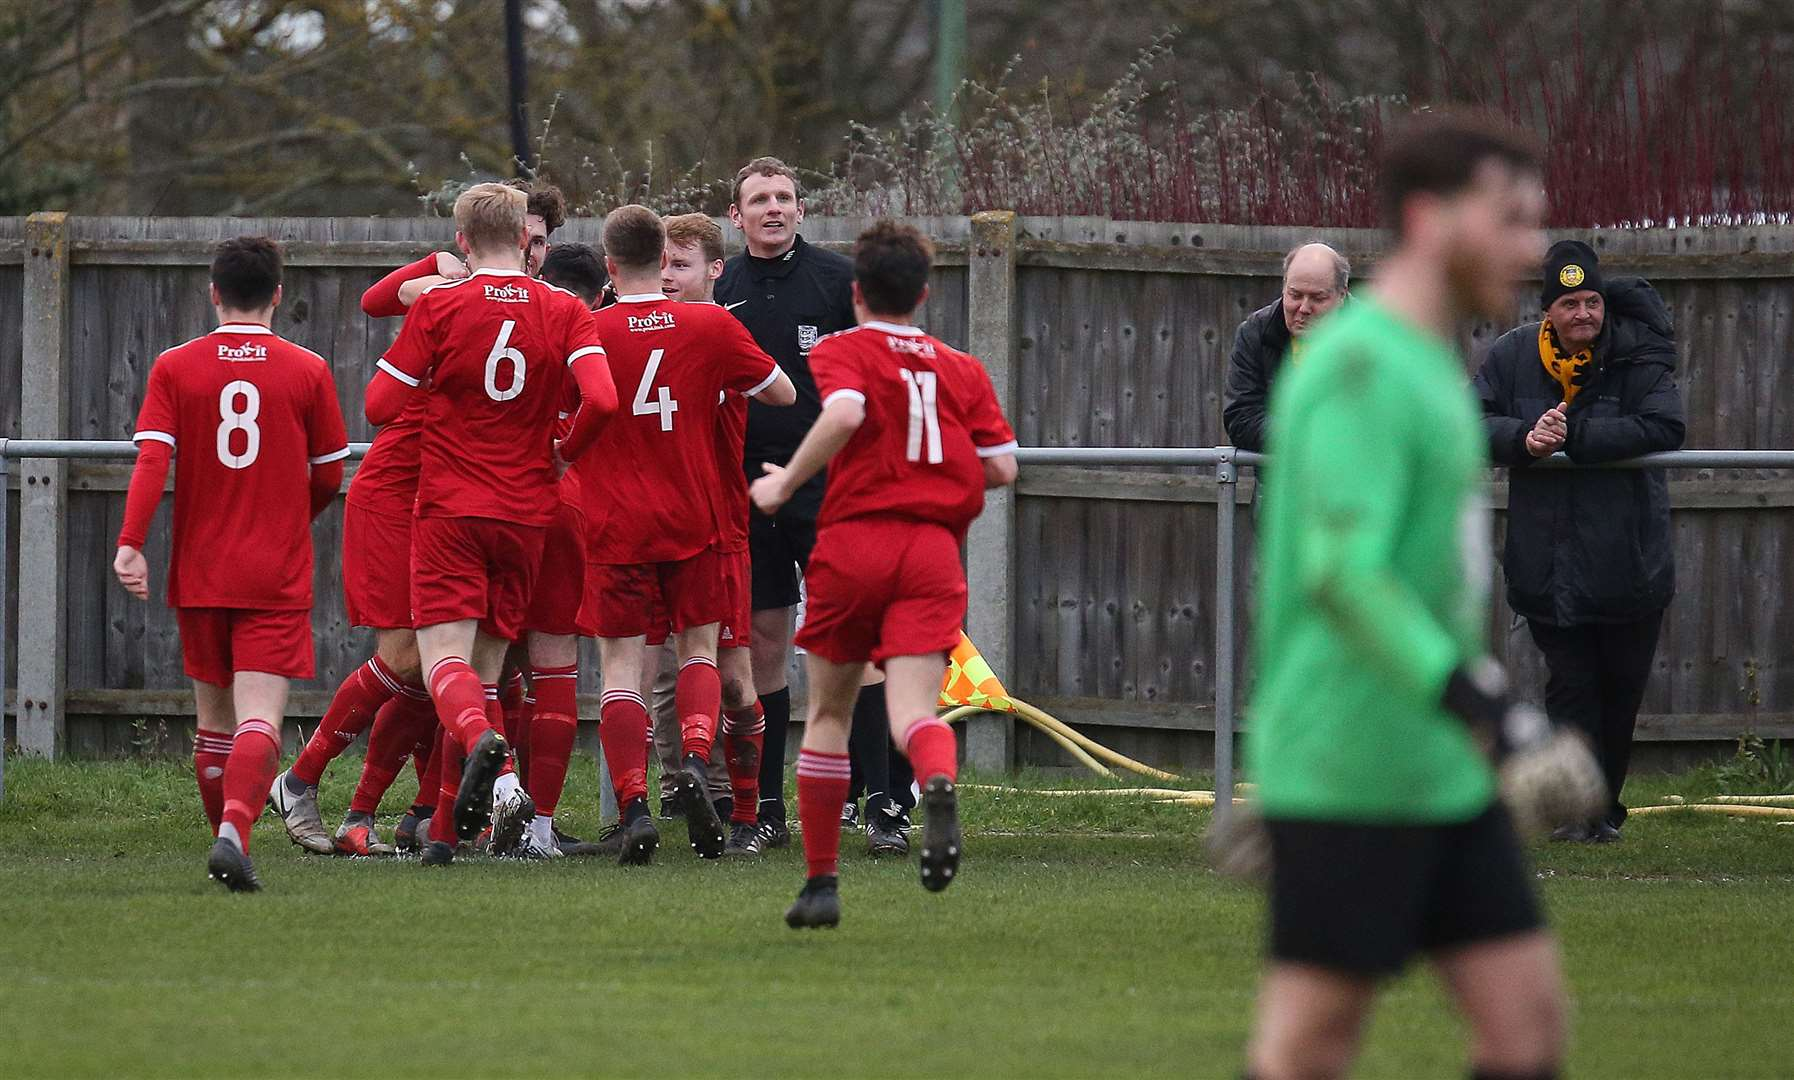 Haverhill Rovers v Stowmarket Town - Haverhill celebrate a goal.Pic - Richard Marsham/RMG Photography. (25914841)